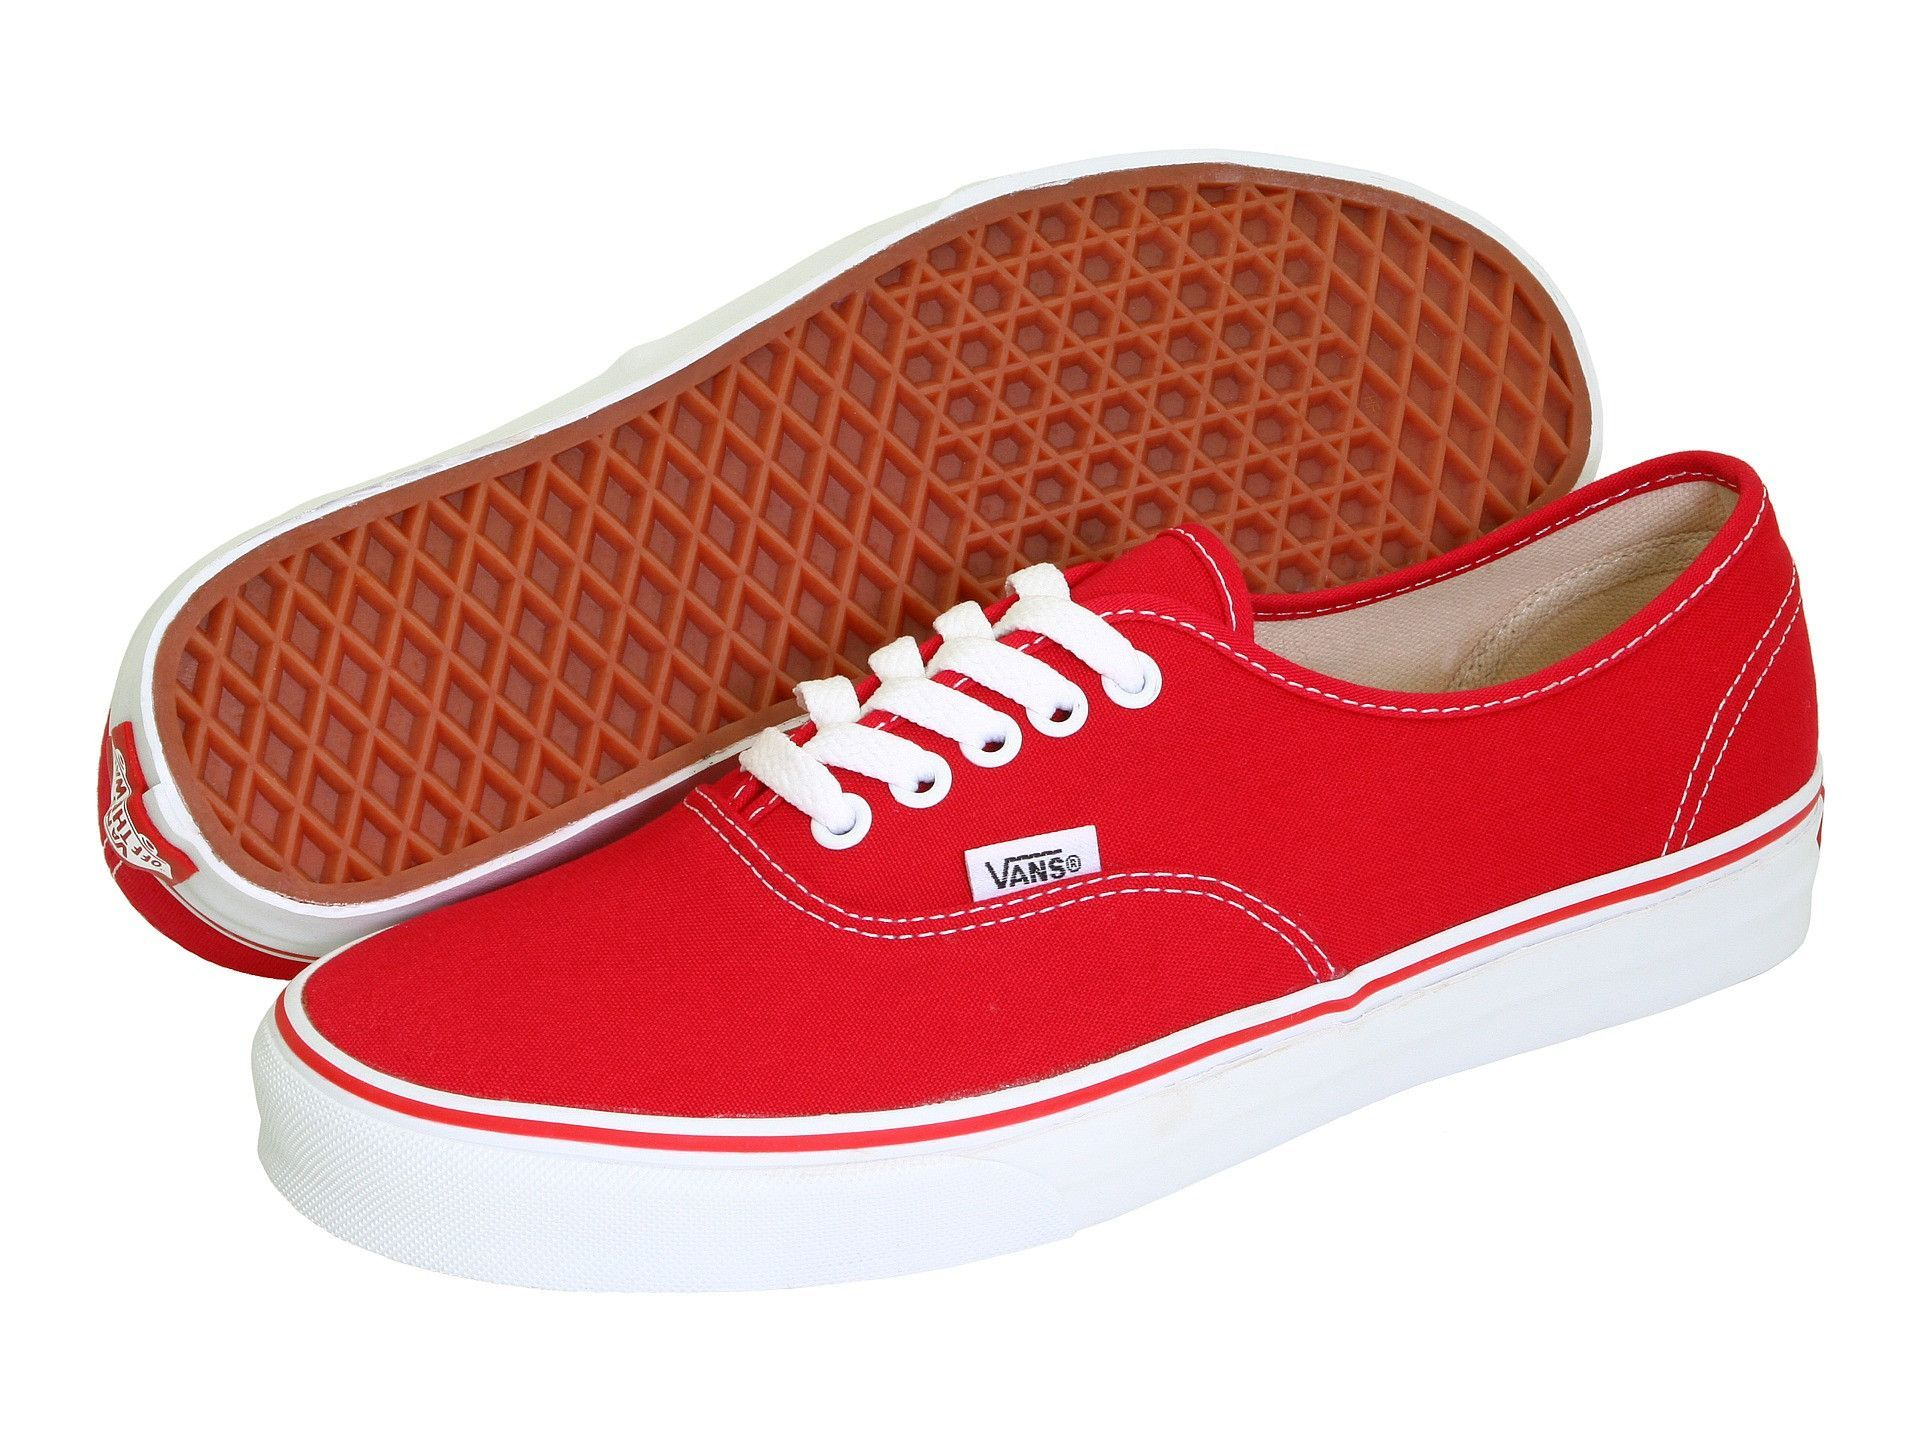 b088996213a356 VANS Authentic Women